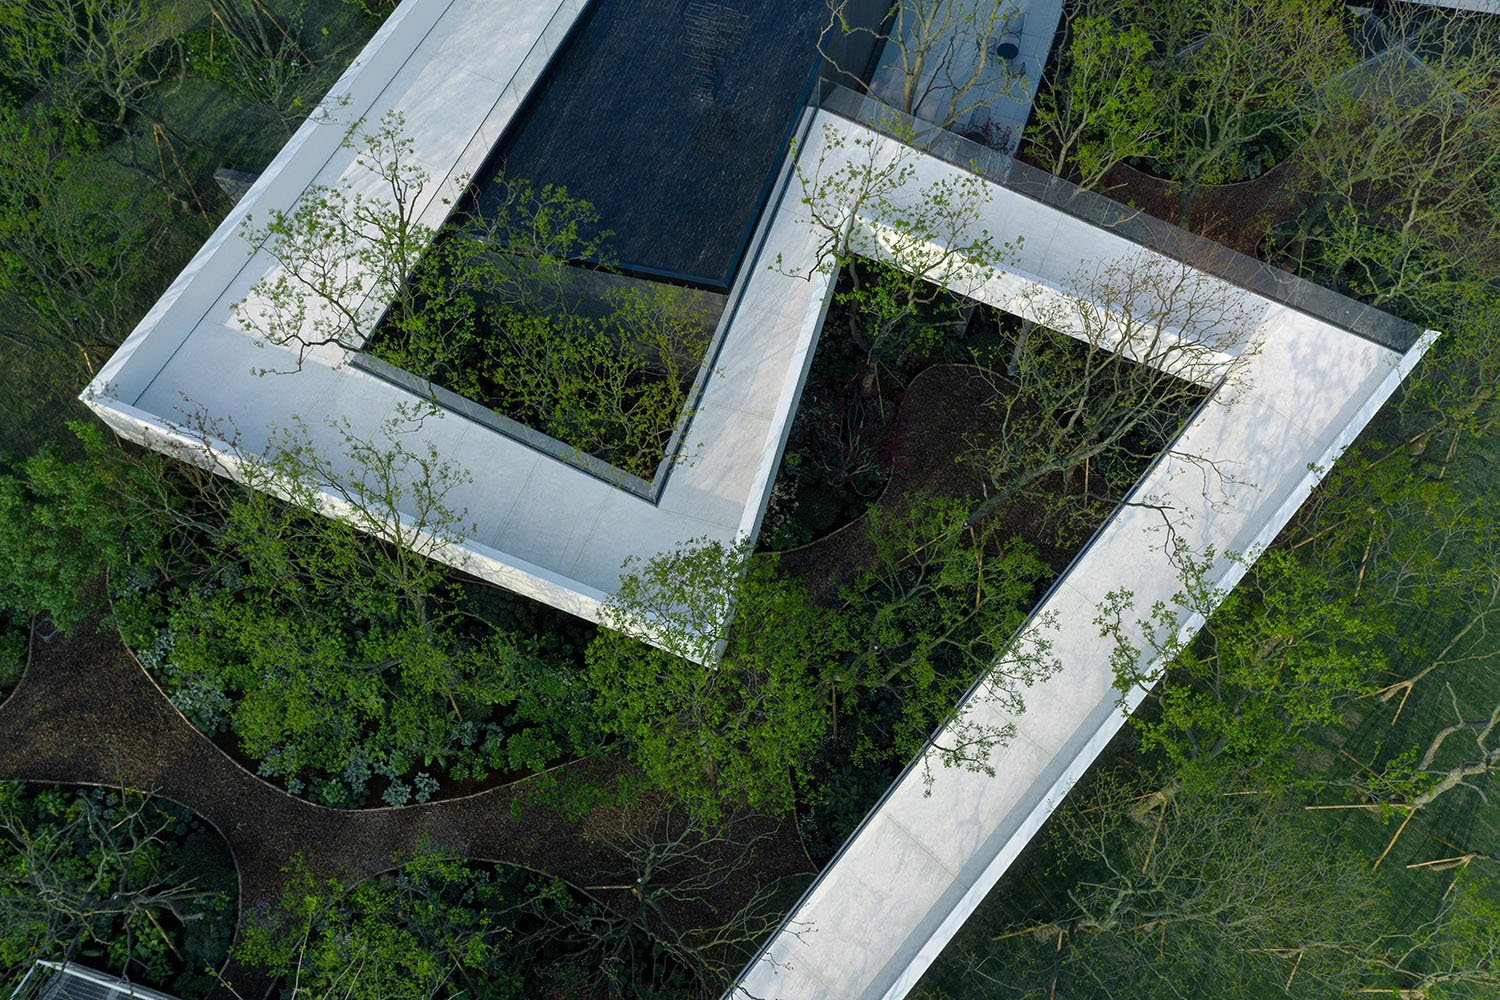 The landscape bridge is built on the hillside wriggled and scattered and integrated with the building. Visitors can feel the wild pleasure of walking through the trees. Prixm Images